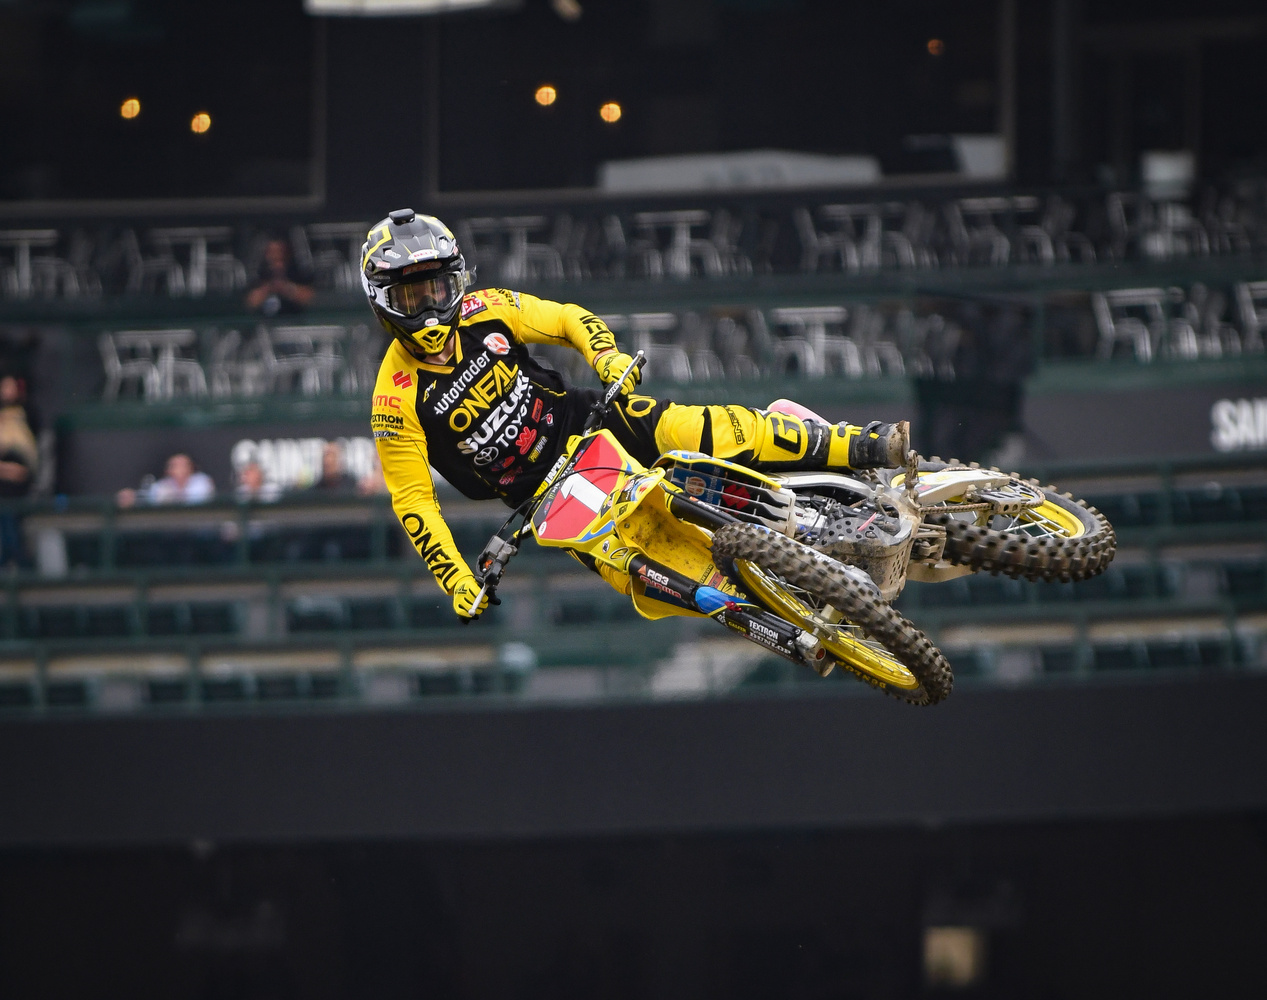 Justin Hill at Anaheim Supercross by Douglas Turney